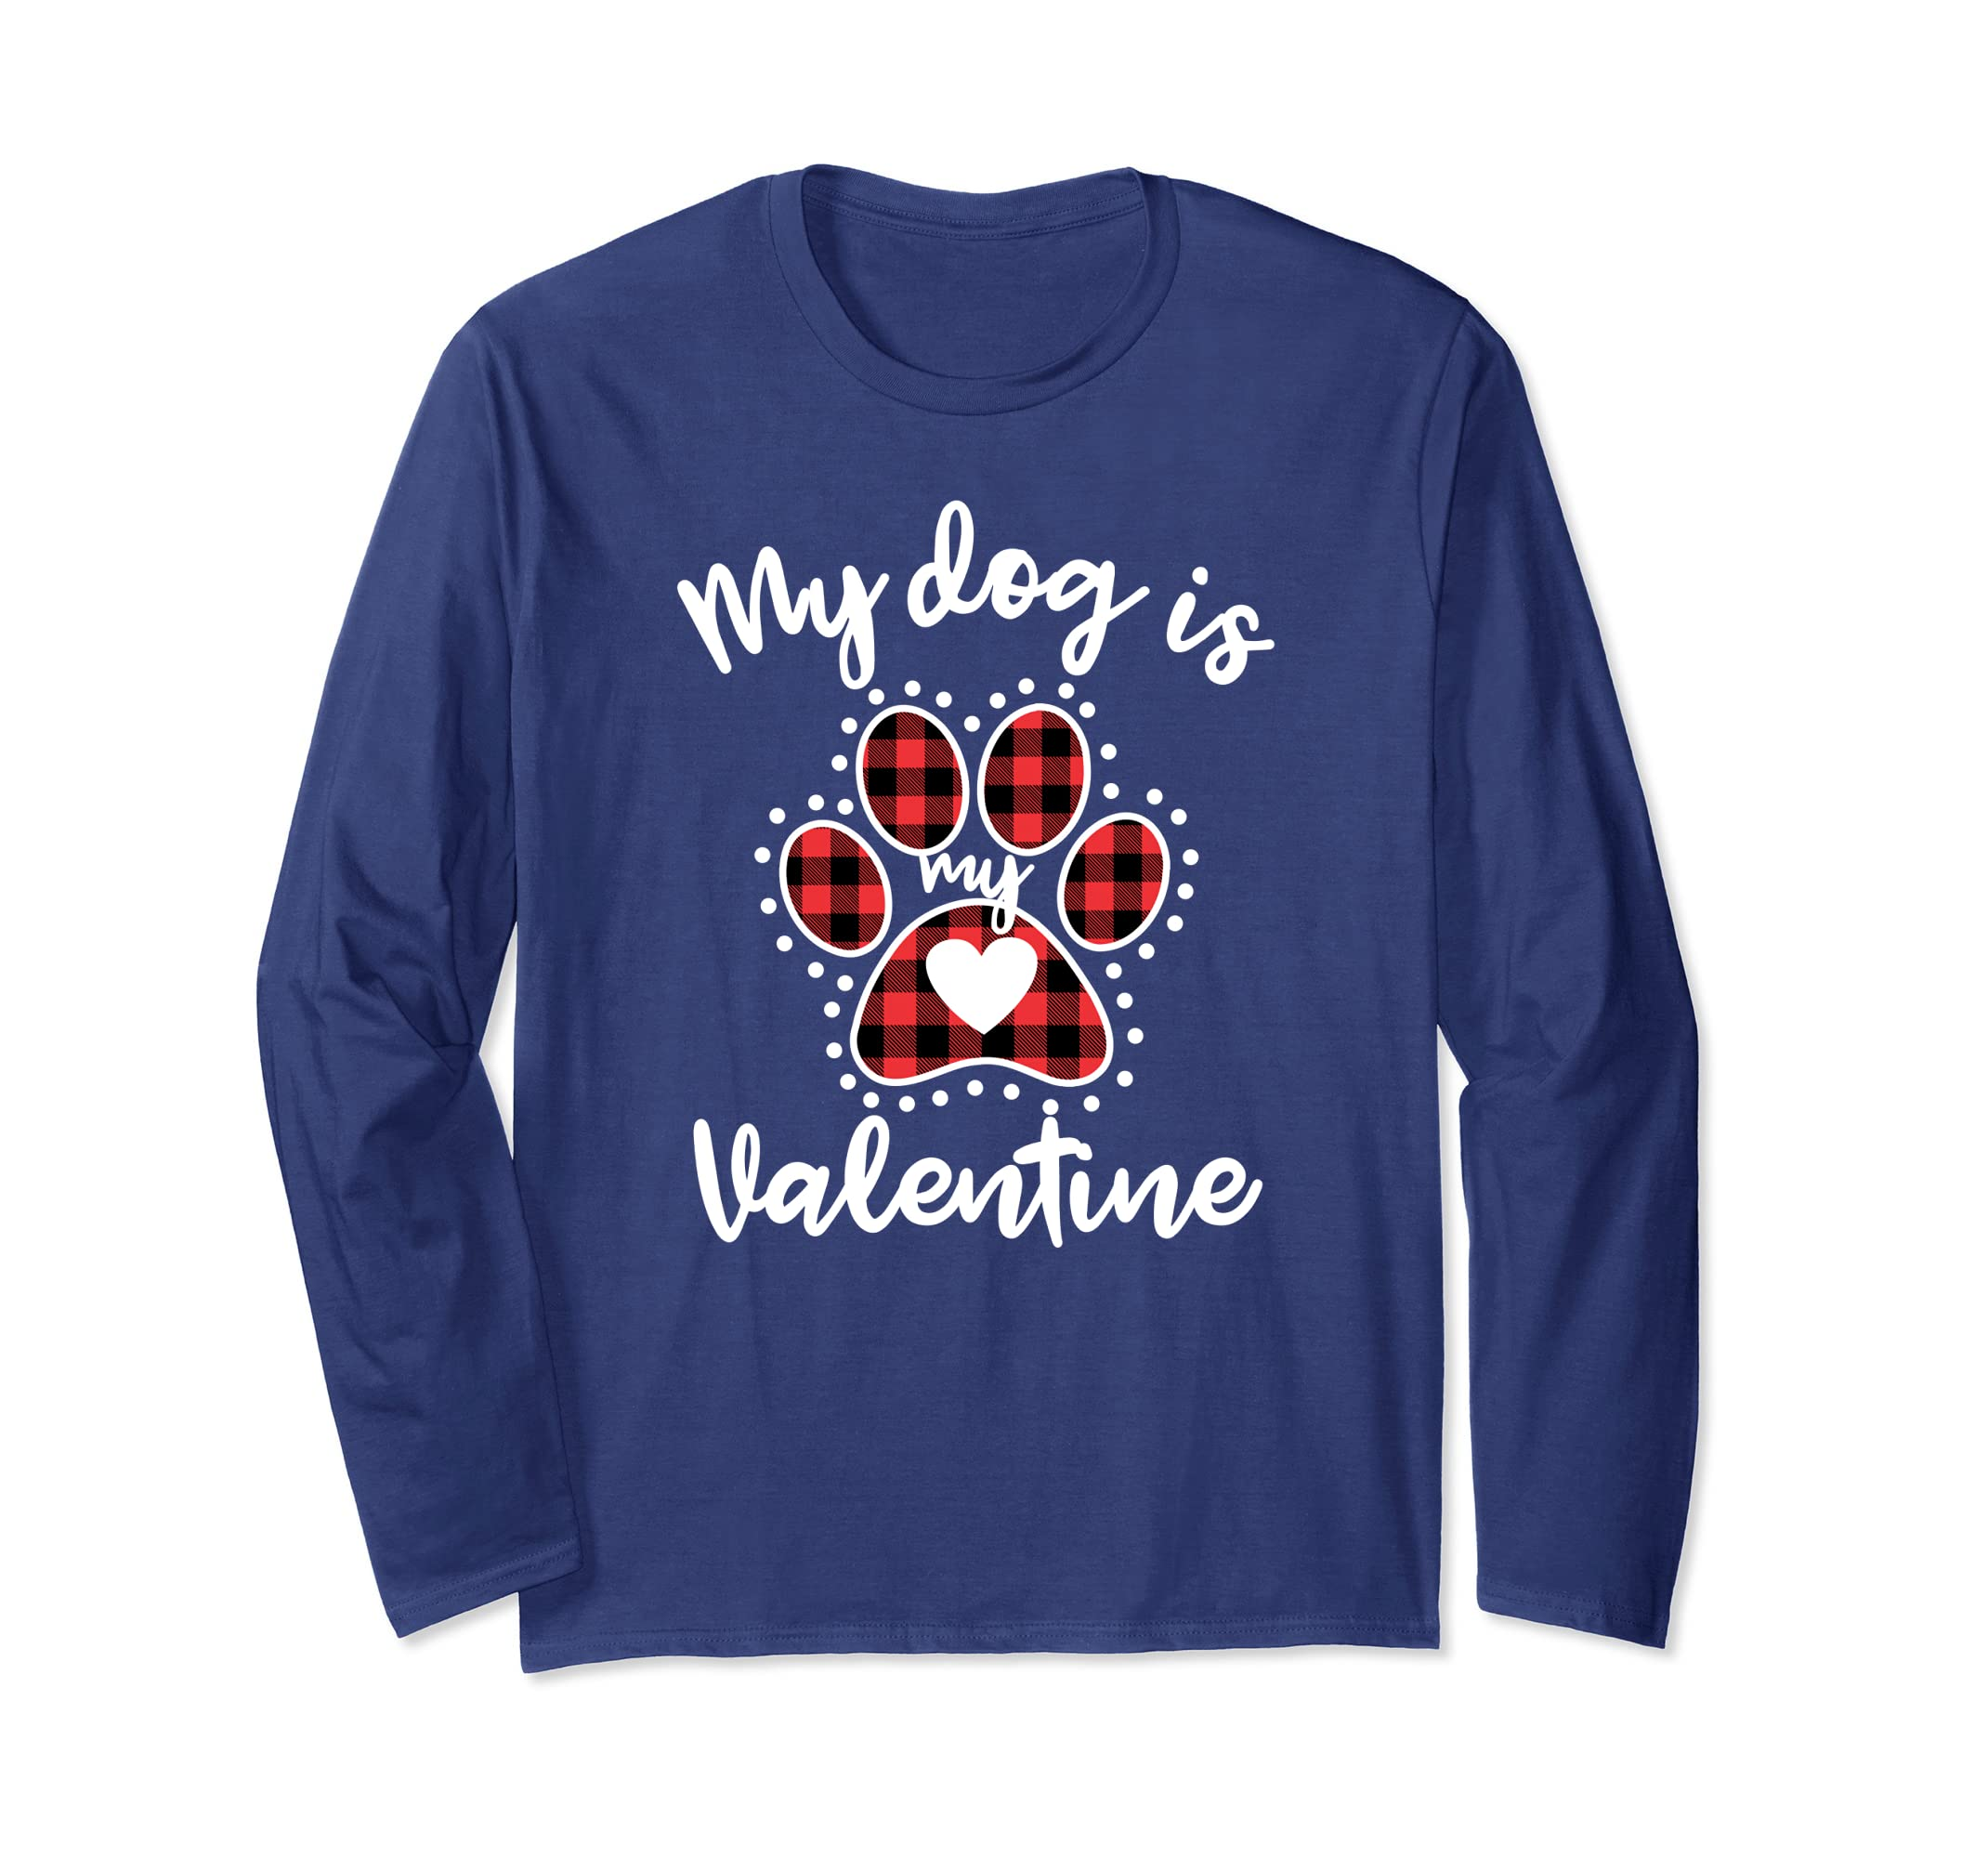 fc8879df3b95 Amazon.com: My Dog is My Valentine Long sleeve Gift for dog lover: Clothing